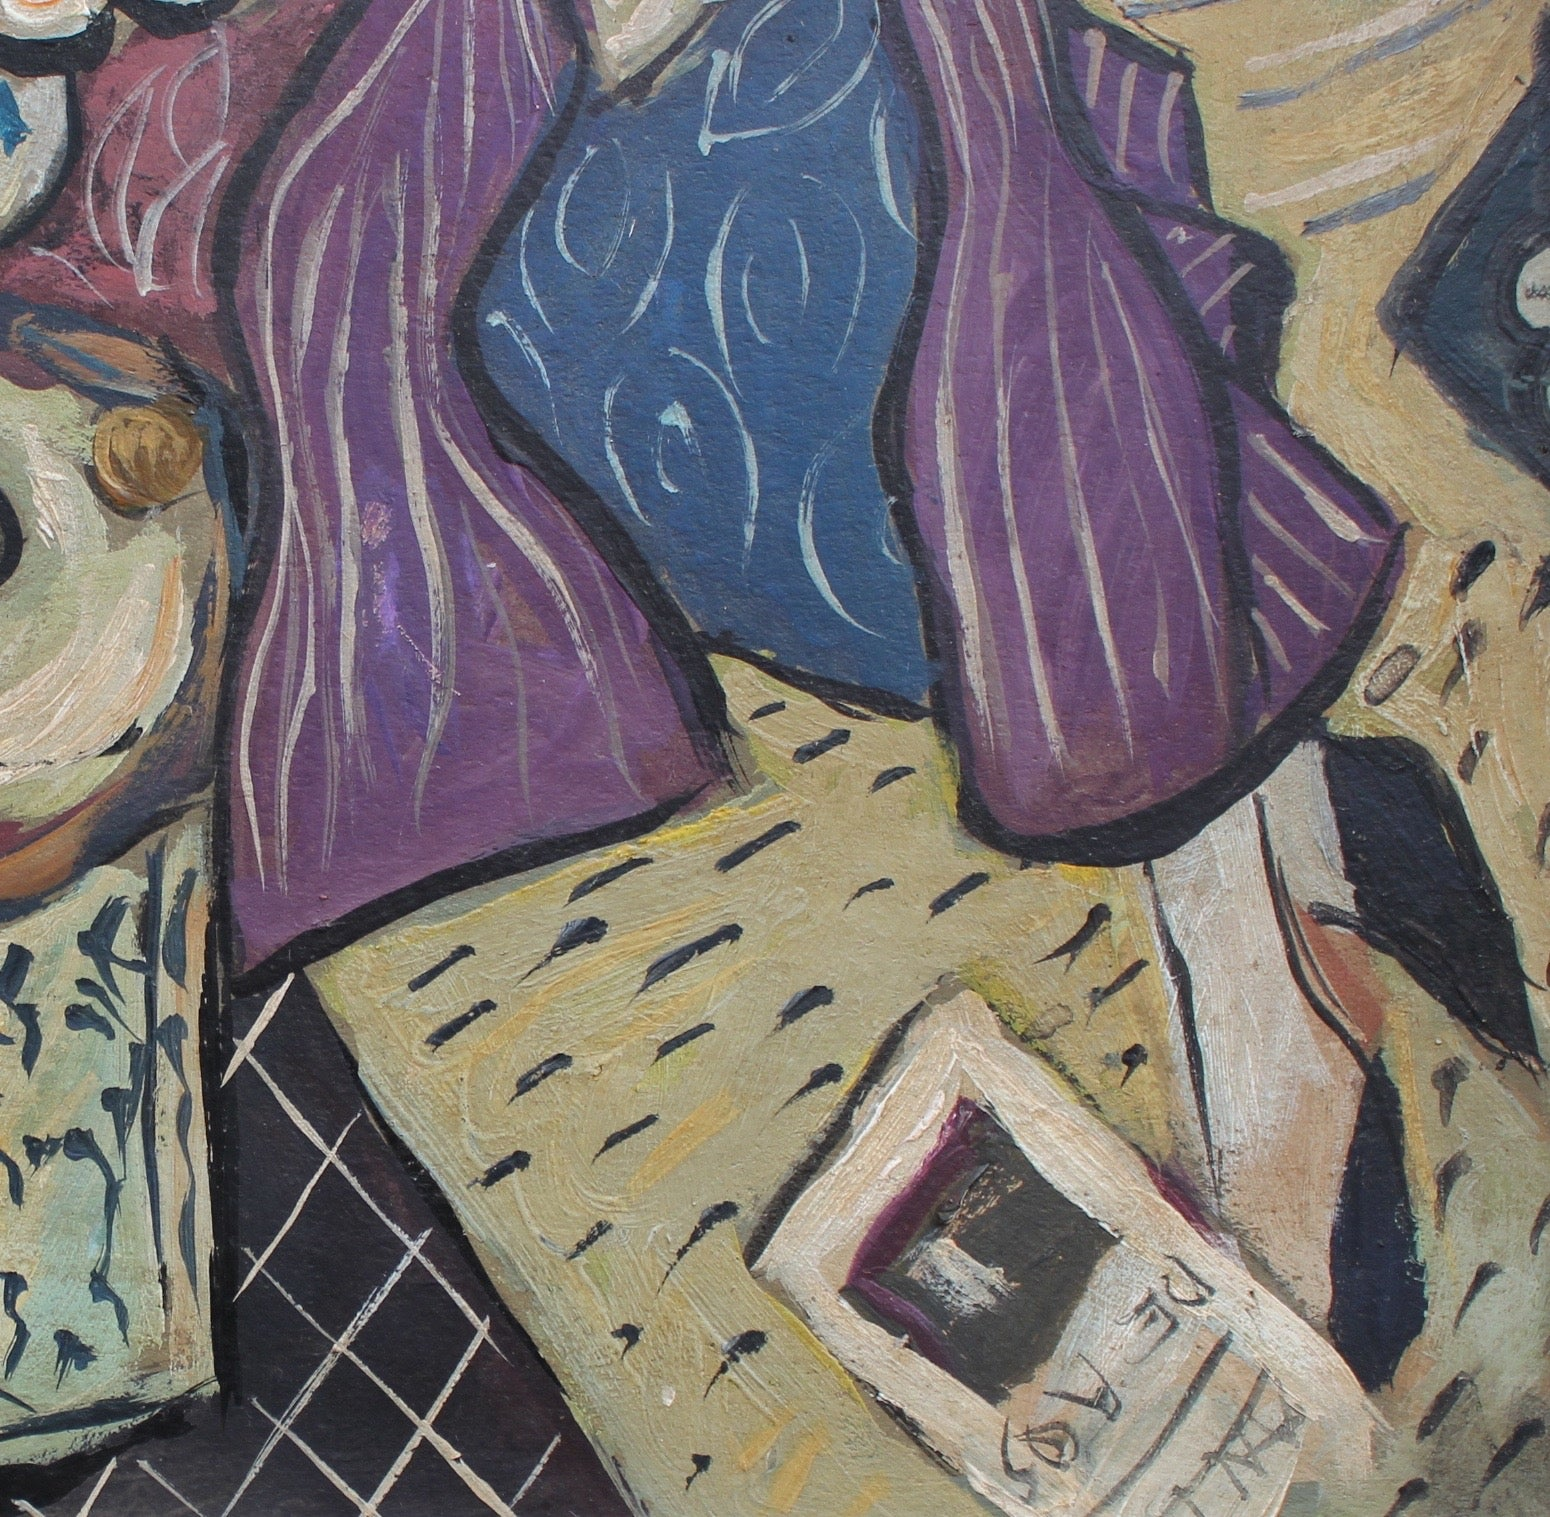 'Portrait of Woman in Purple Coat' by A.R.D. (circa 1940s)